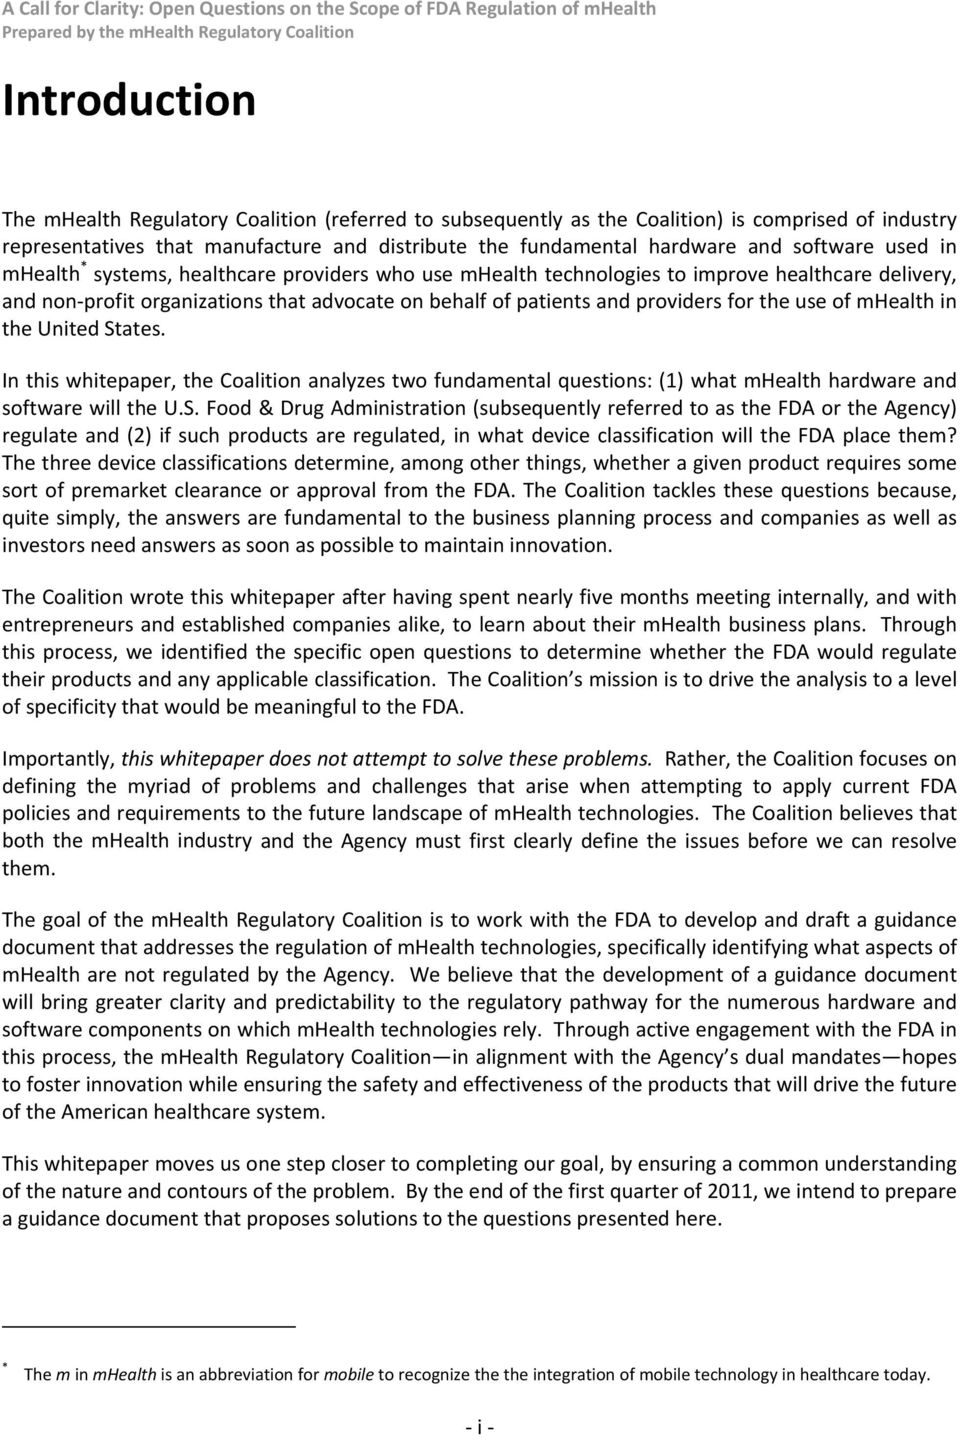 United States. In this whitepaper, the Calitin analyzes tw fundamental questins: (1) what mhealth hardware and sftware will the U.S. Fd & Drug Administratin (subsequently referred t as the FDA r the Agency) regulate and (2) if such prducts are regulated, in what device classificatin will the FDA place them?